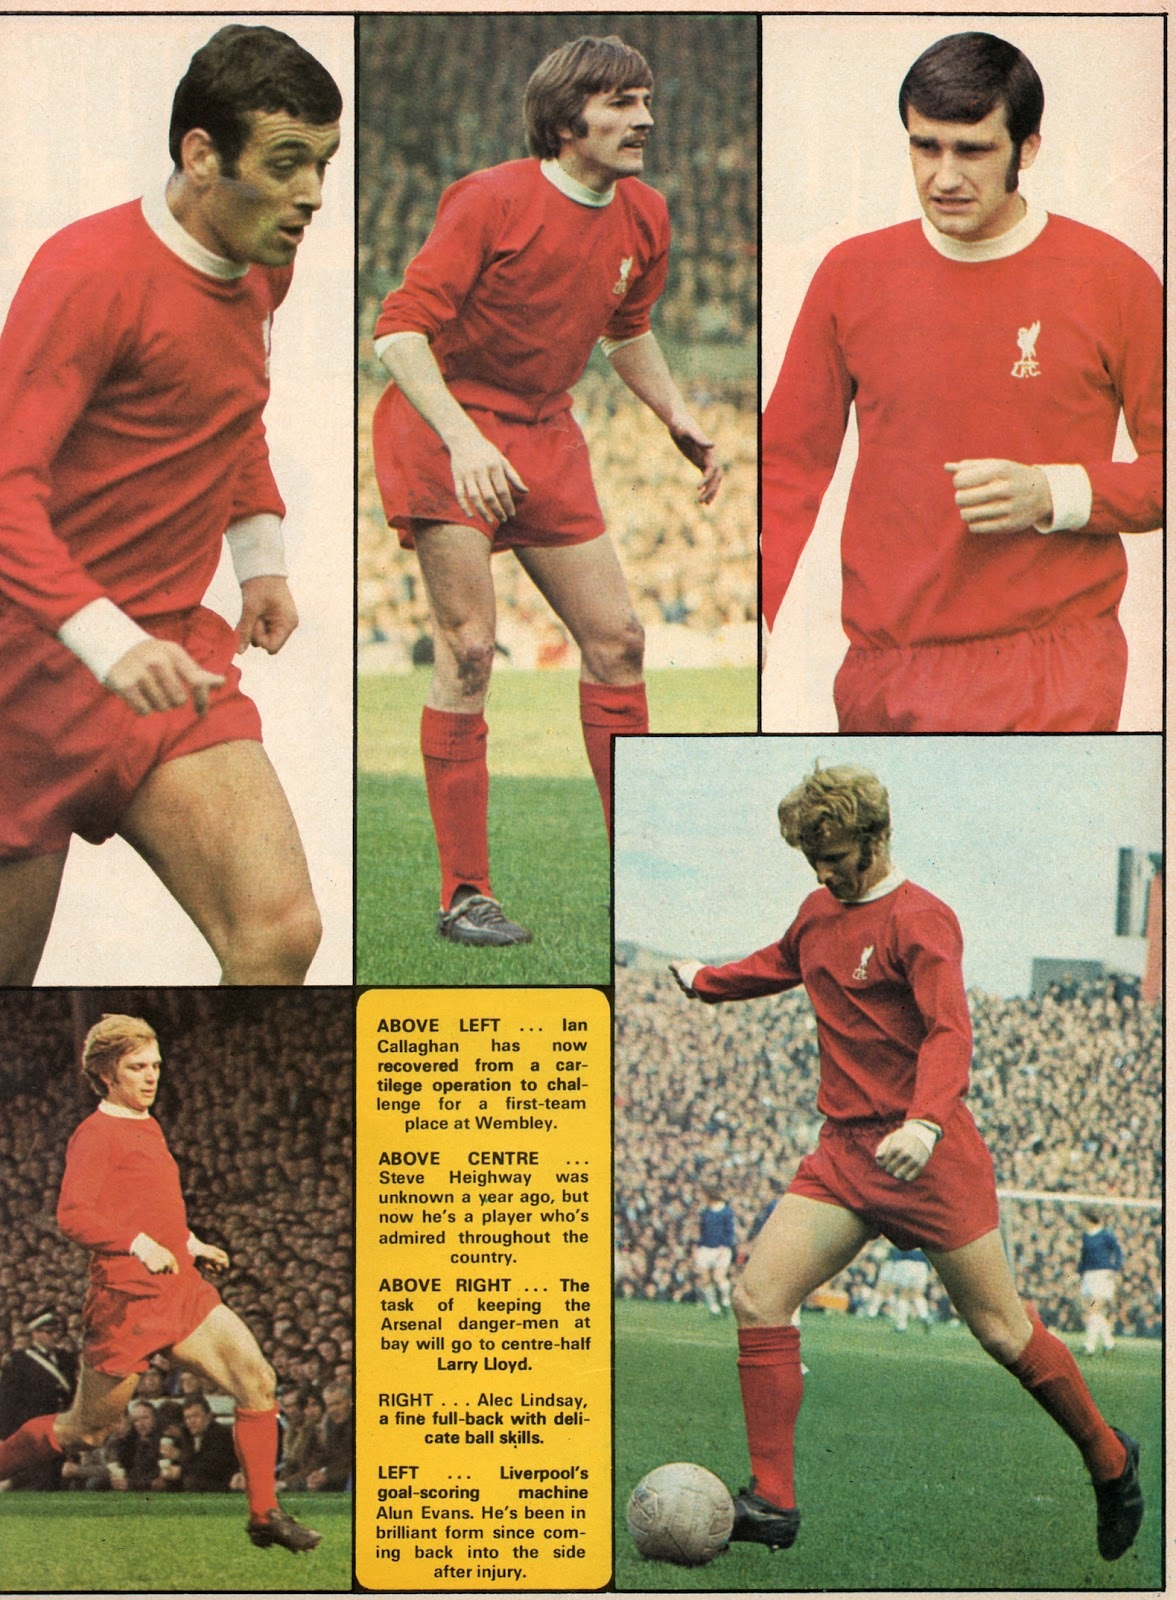 Color images of Liverpool's key men in the 1971 FA Cup final